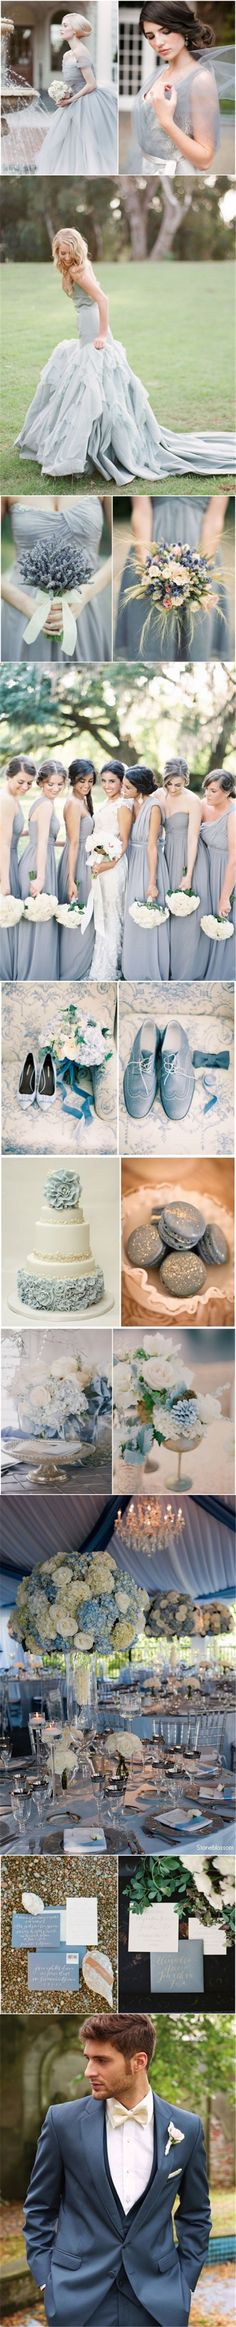 2015 wedding color ideas - dusty blue wedding color ideas for spring/ fall weddings